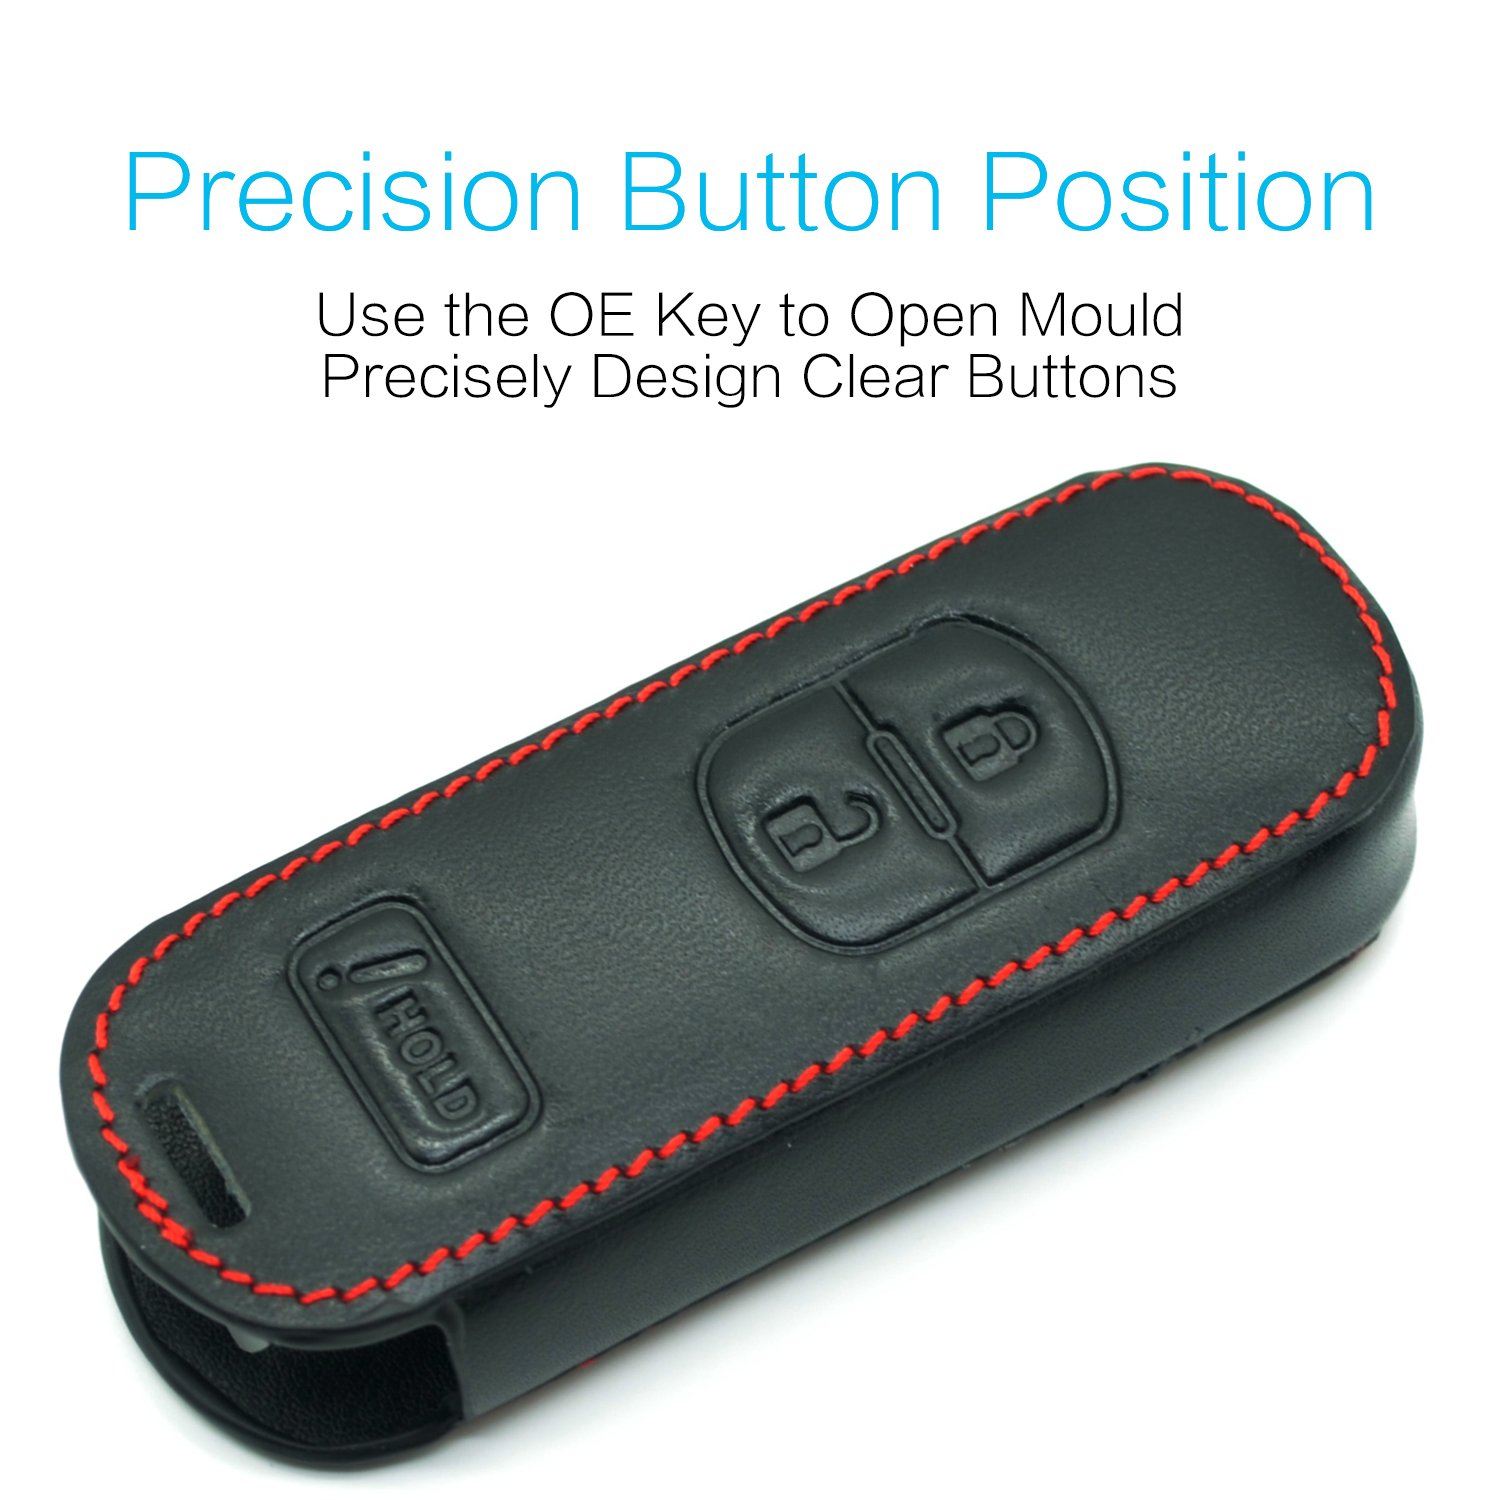 Compatible with fit for Mazda 3 CX-5 CX-7 CX-9 WAZSKE13D01 3 Buttons Leather Keyless Entry Remote Control Key Fob Cover Pouch Bag Jacket Case Protector Shell MECHCOS